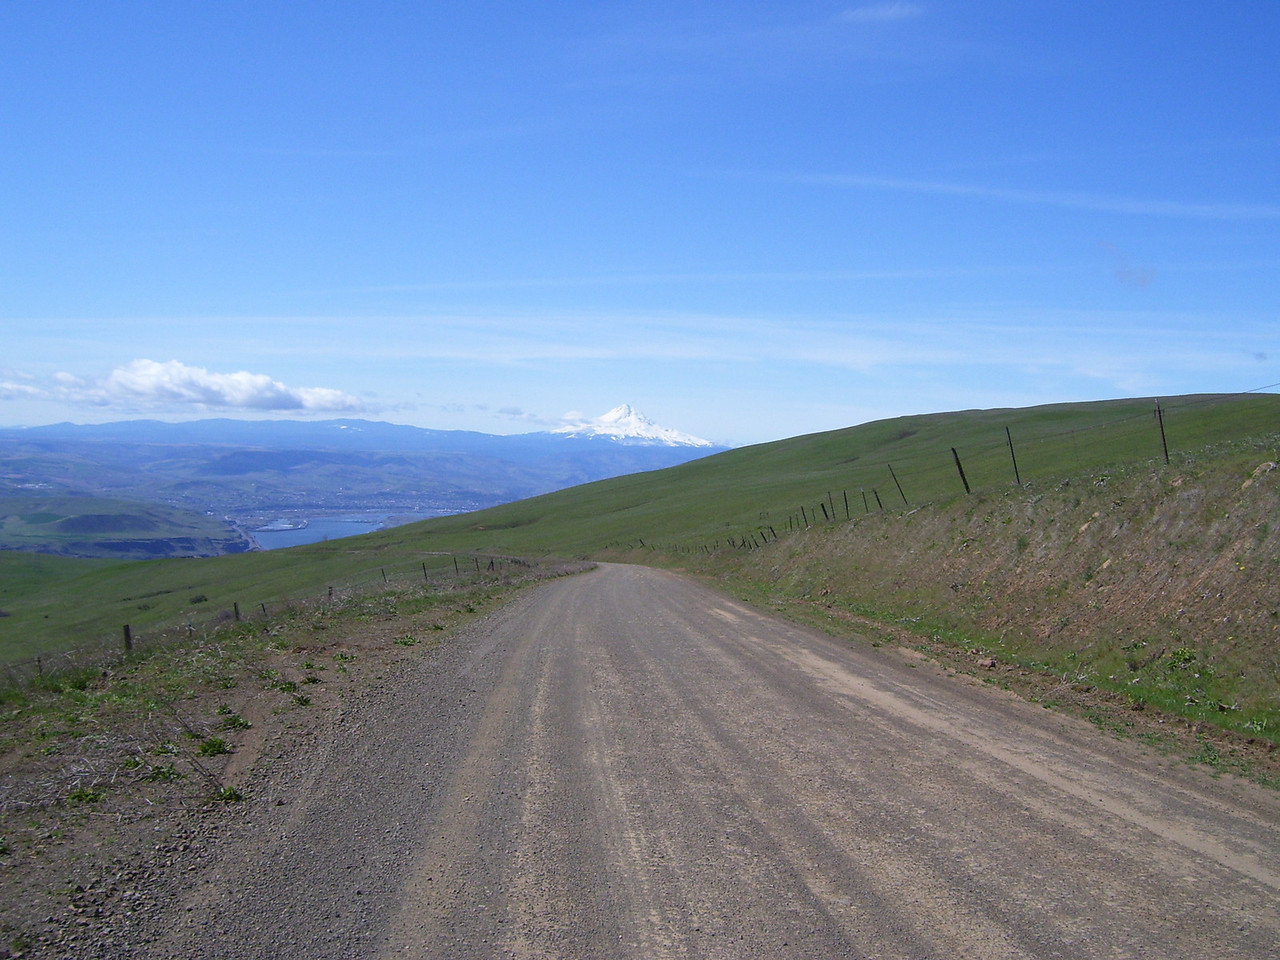 Mt Hood and the Dalles